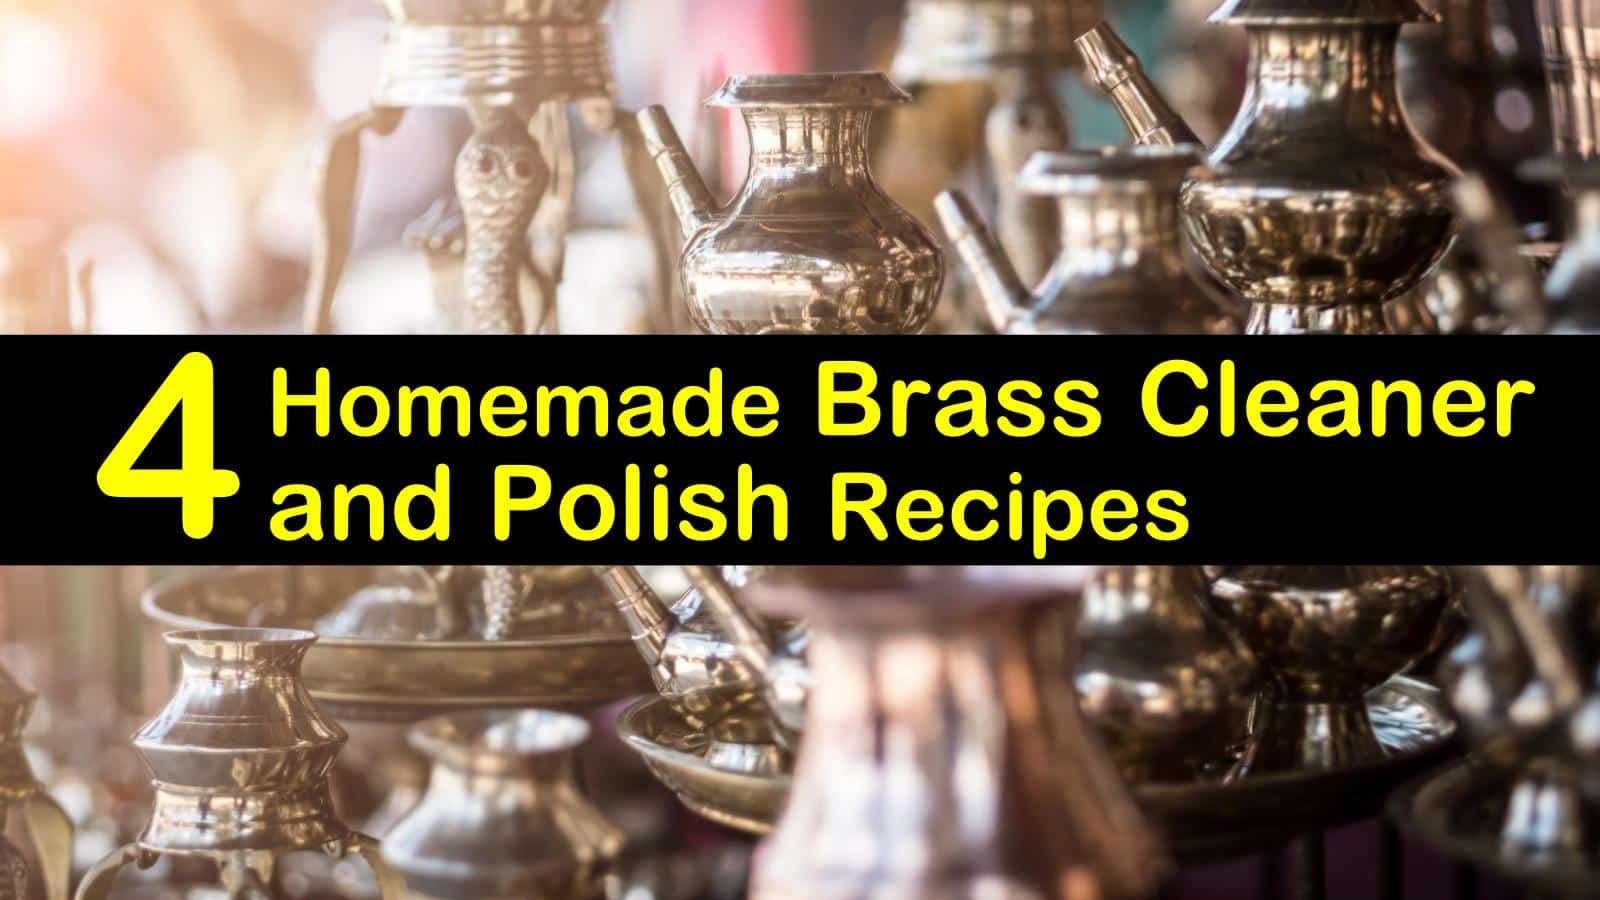 homemade brass cleaner polish titilimg